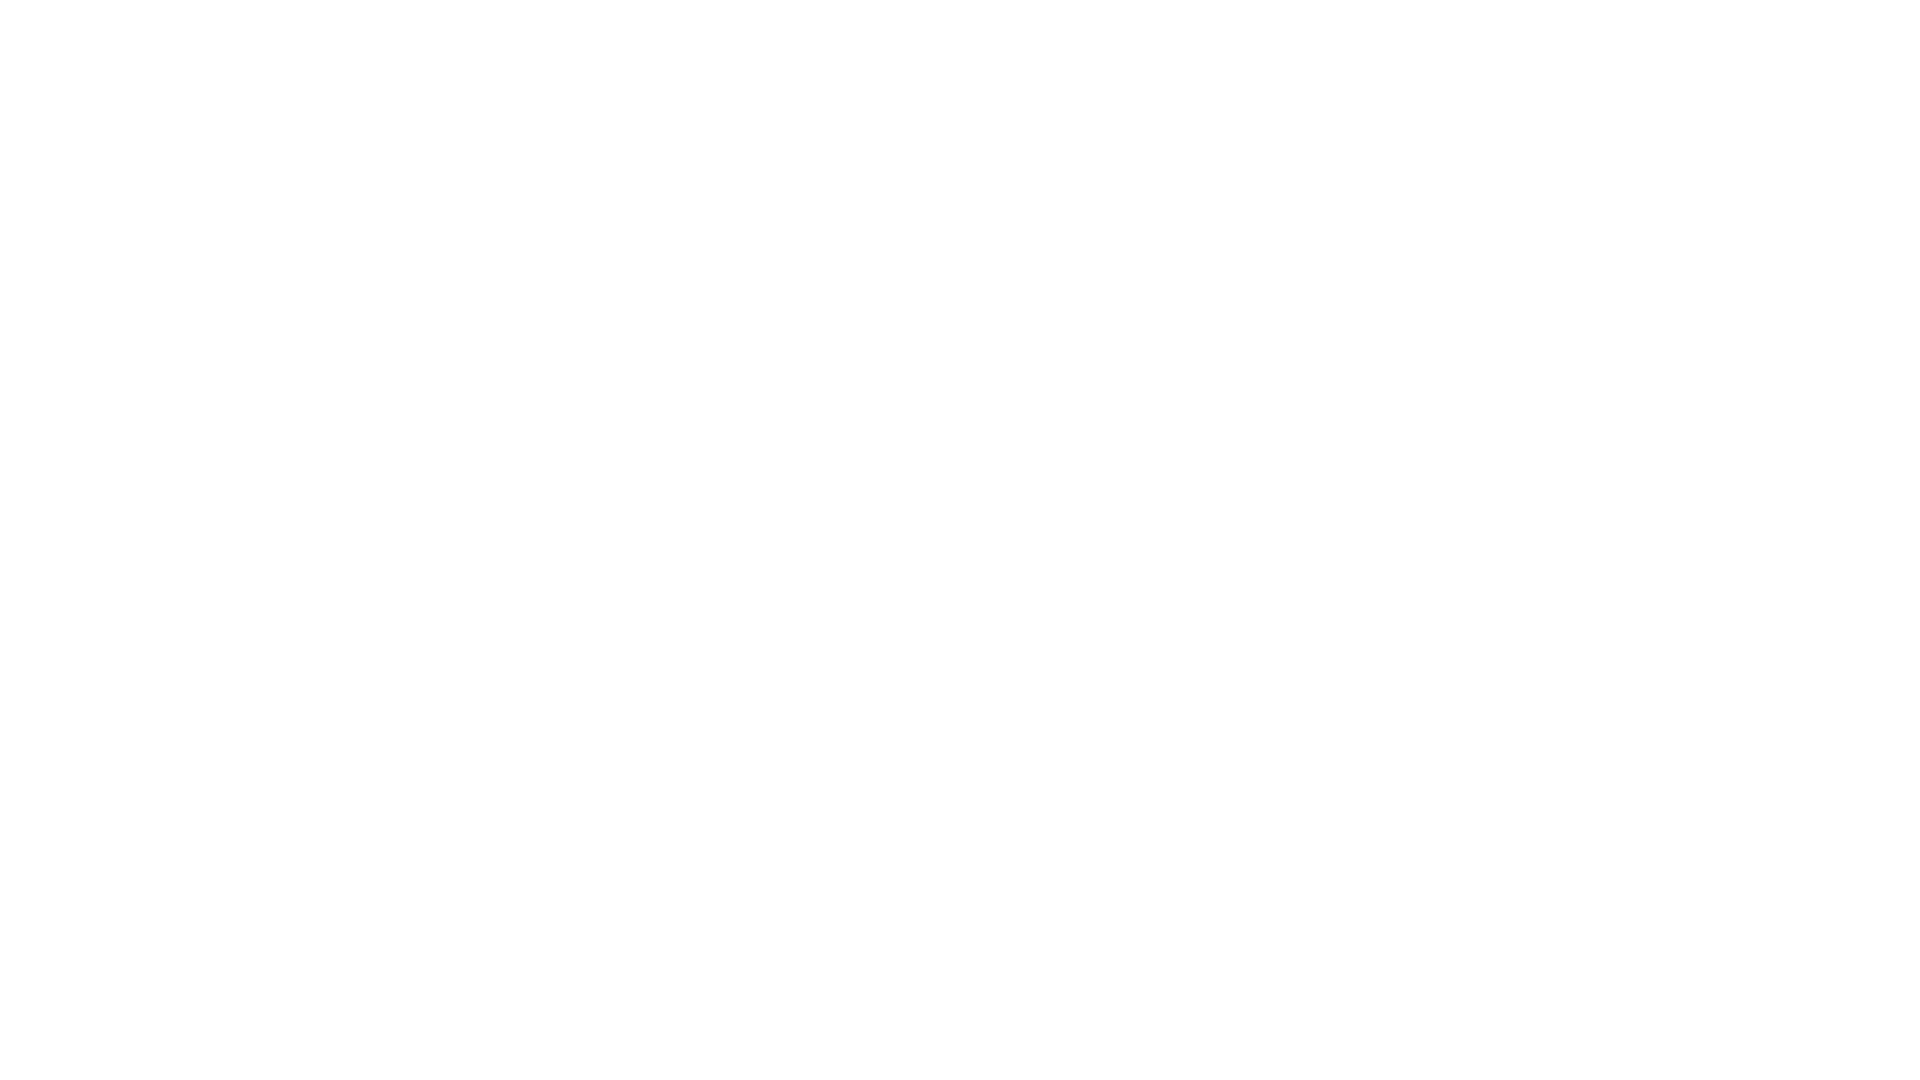 A-community-of-hope-for-you